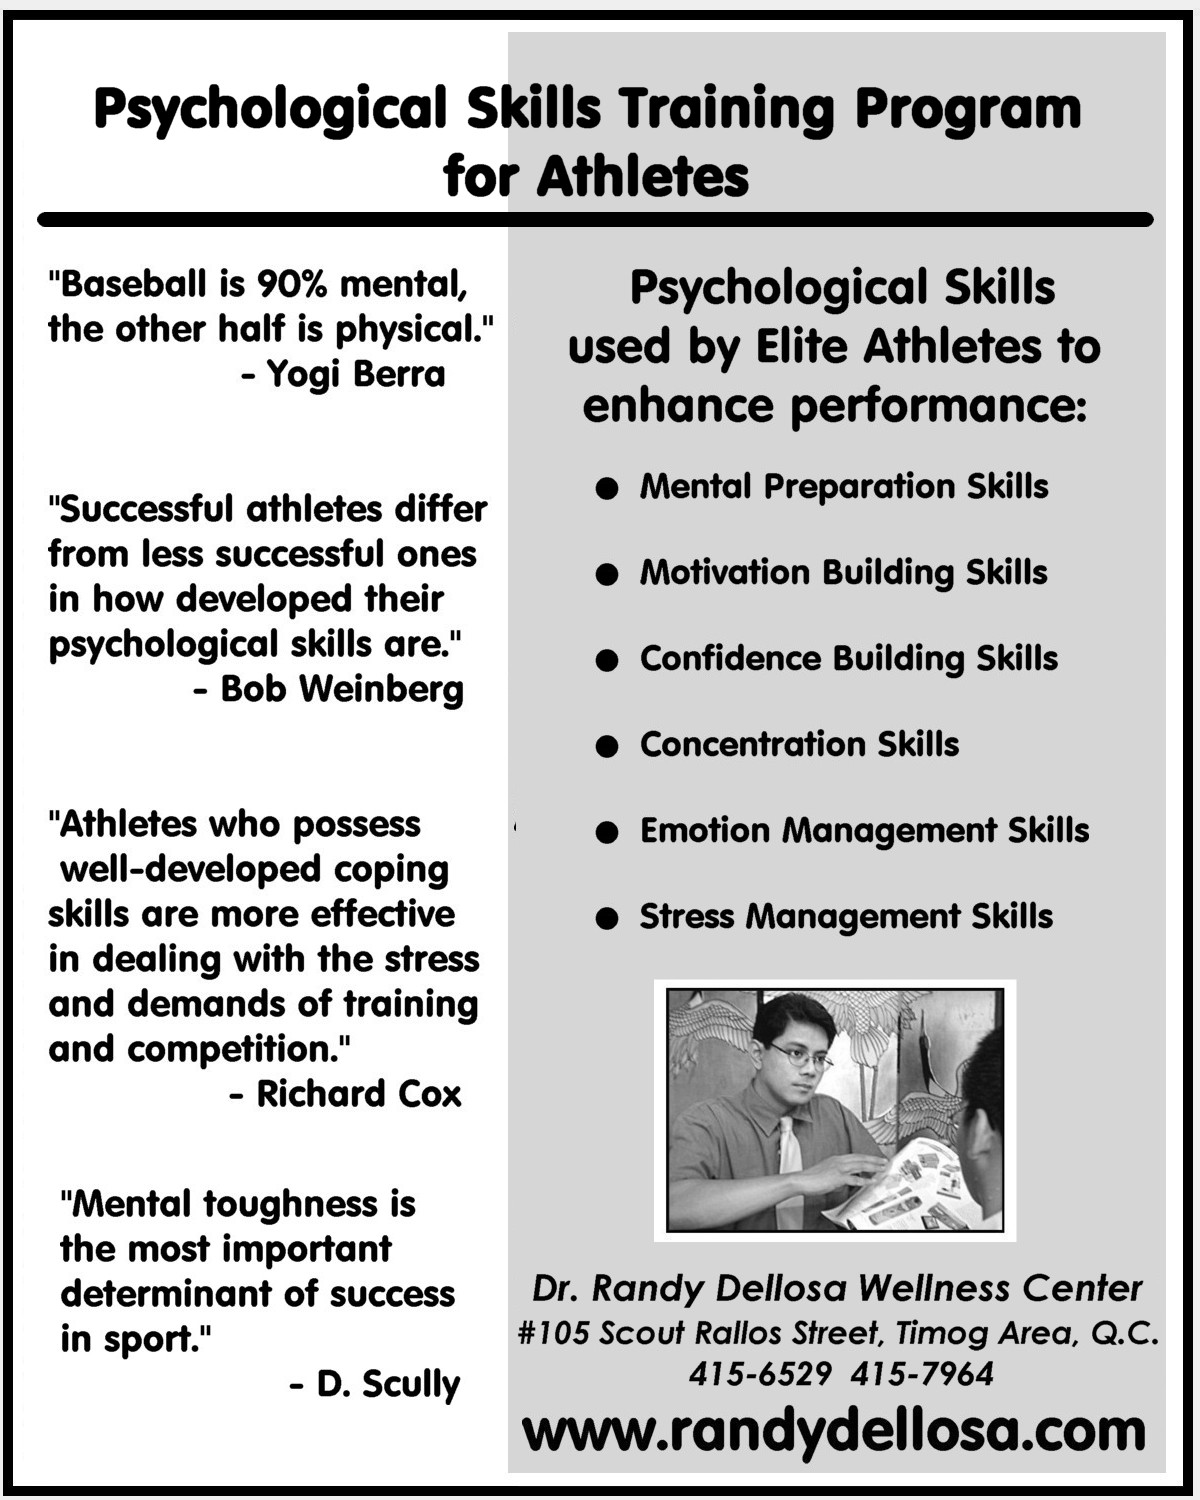 a quest of sport psychologists for developing successful programs for athletes Competition can cause athletes to become shortsighted and thus hinder them from fully developing the value that athletes place on competitive success makes sport a domain for teaching integrity and at its best, then, competition should involve a quest for excellence between evenly matched.